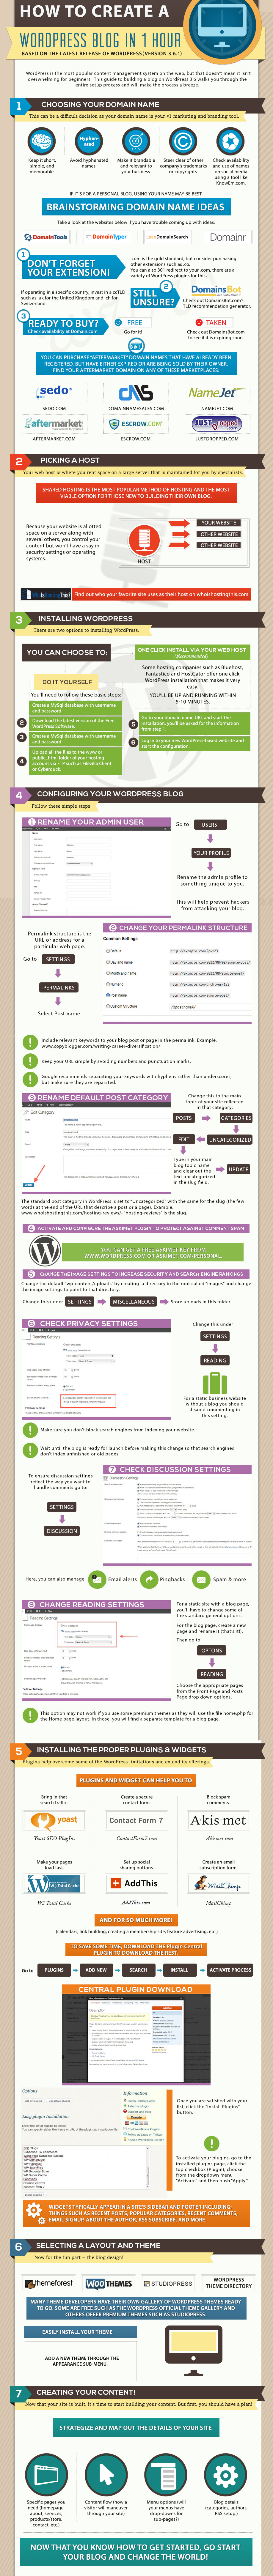 How to Start Your First WordPress Site